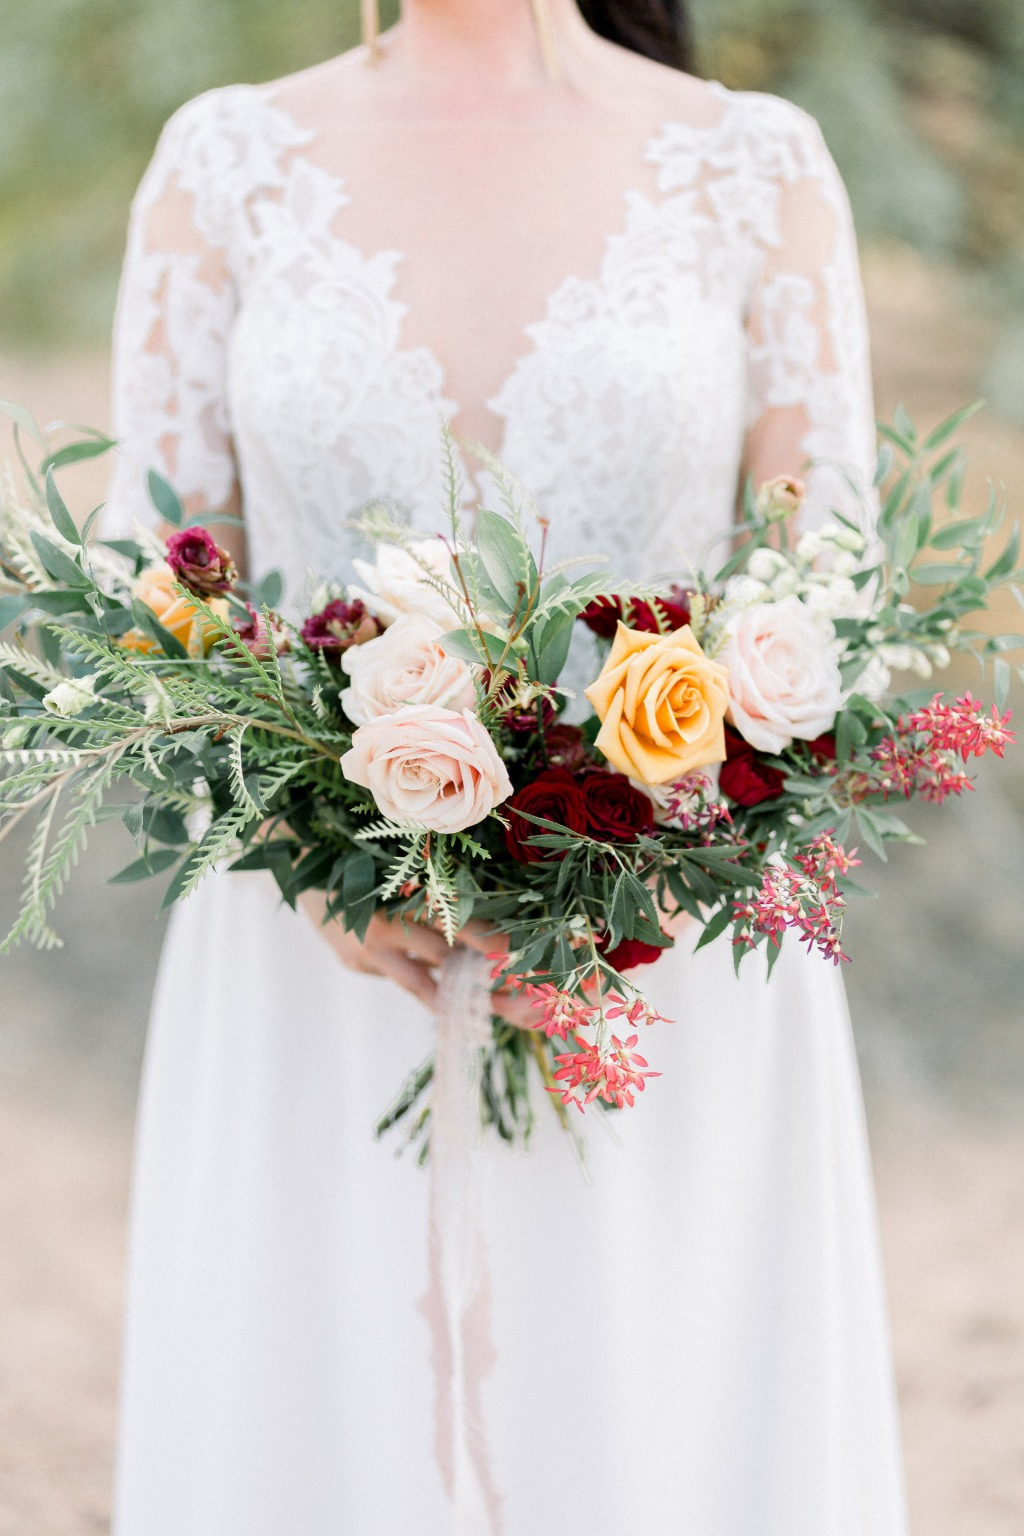 Loving this spring bouquet!!!!